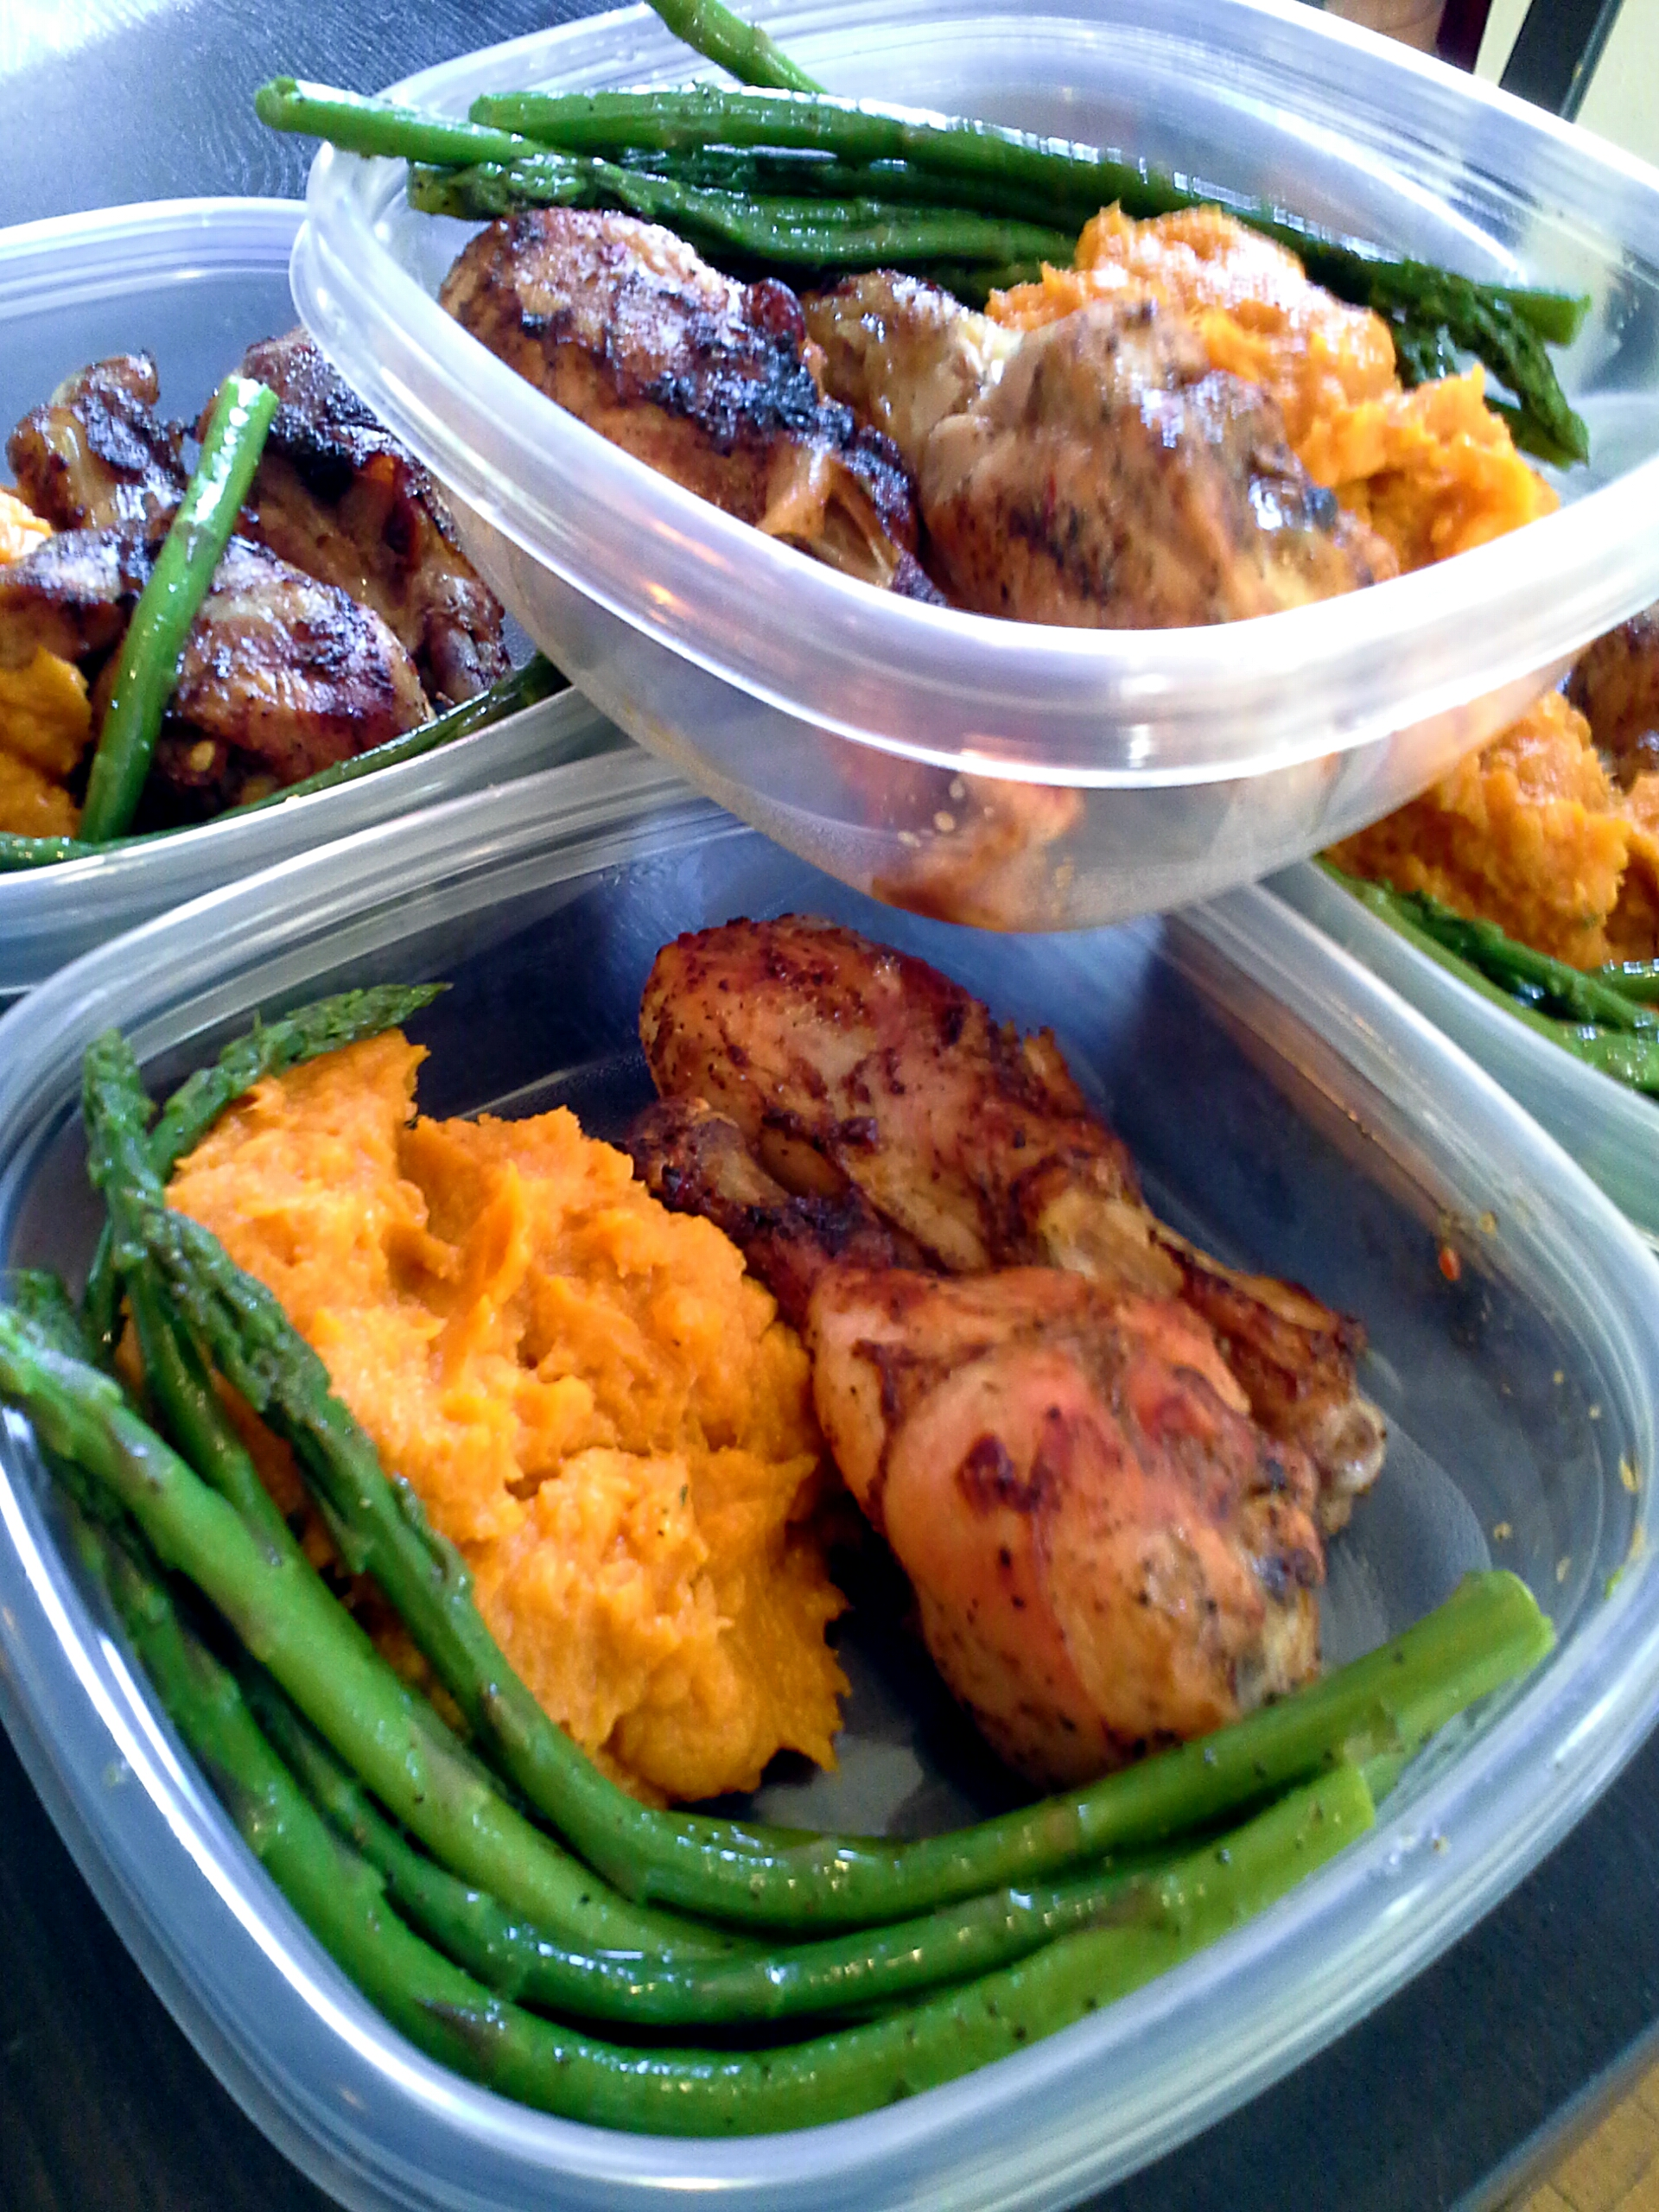 Meal Prep  Yams, Asparagus And Baked Chicken